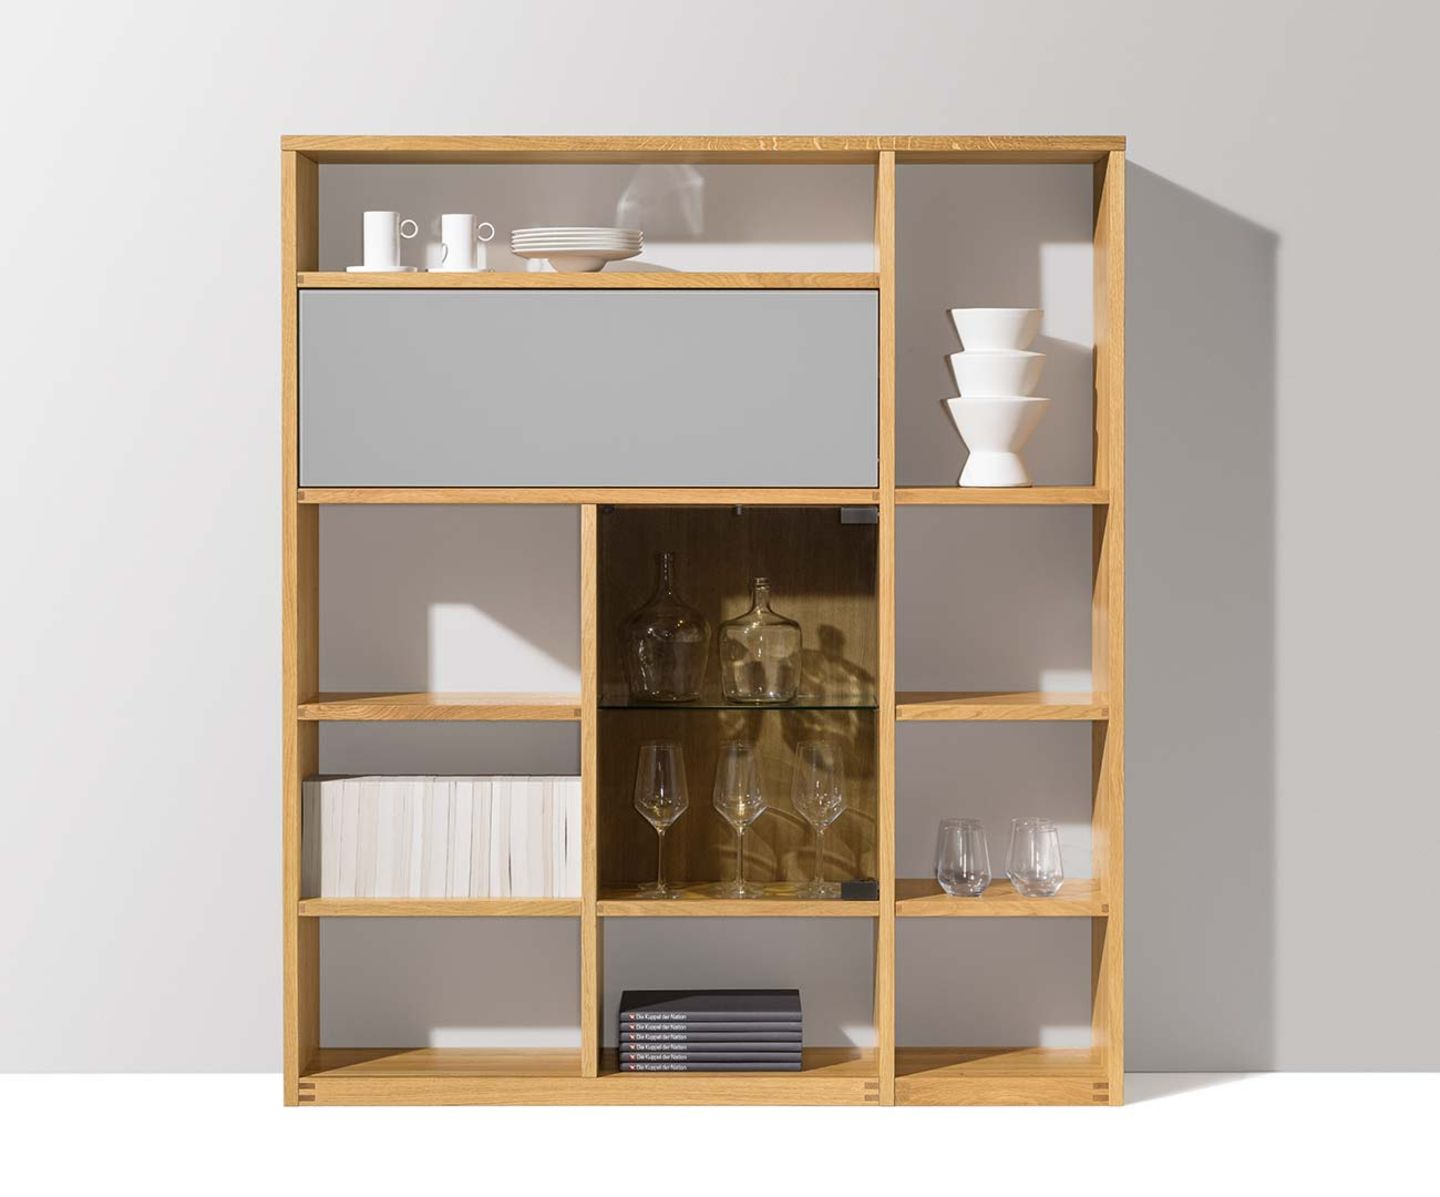 cubus shelf system with consistent form language